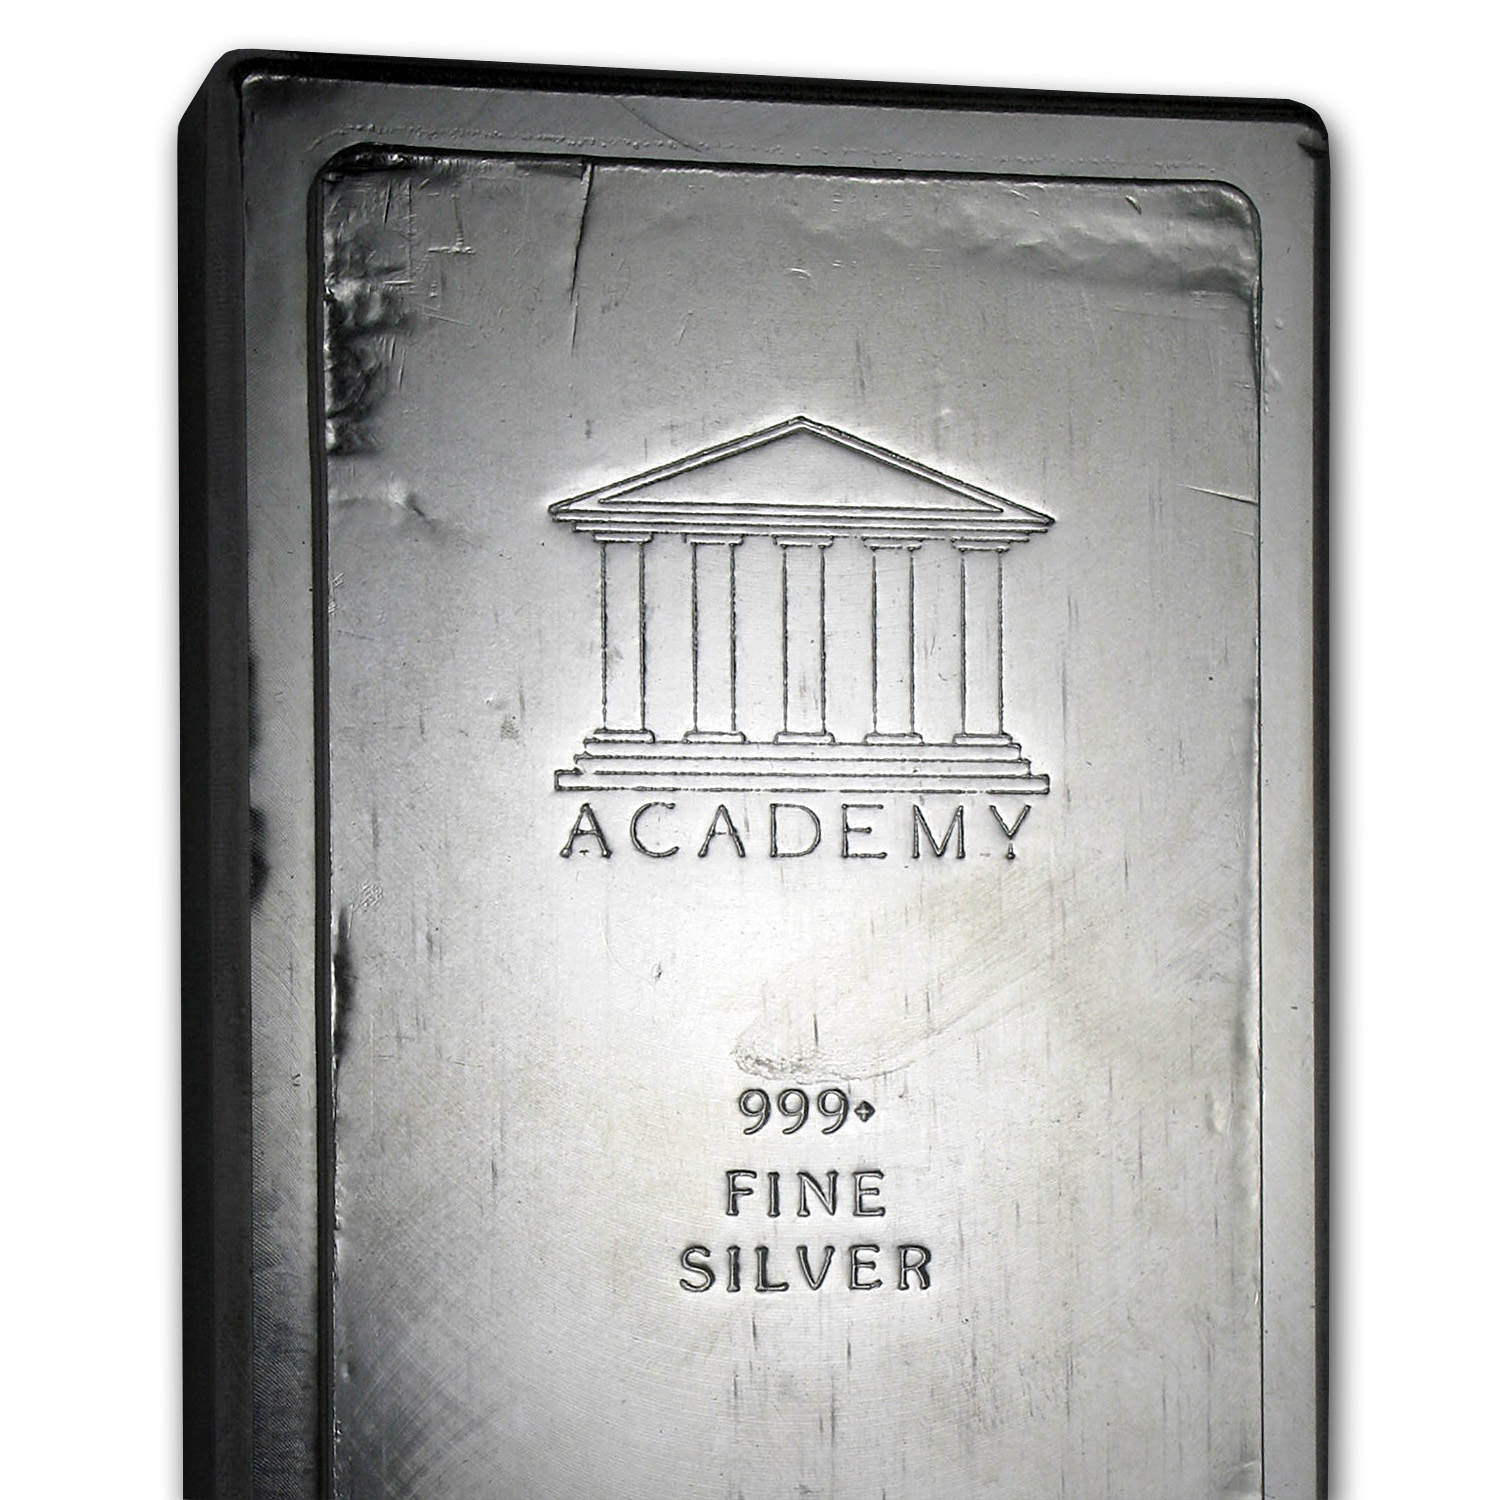 100 oz Silver Bars - Academy (Stackable)